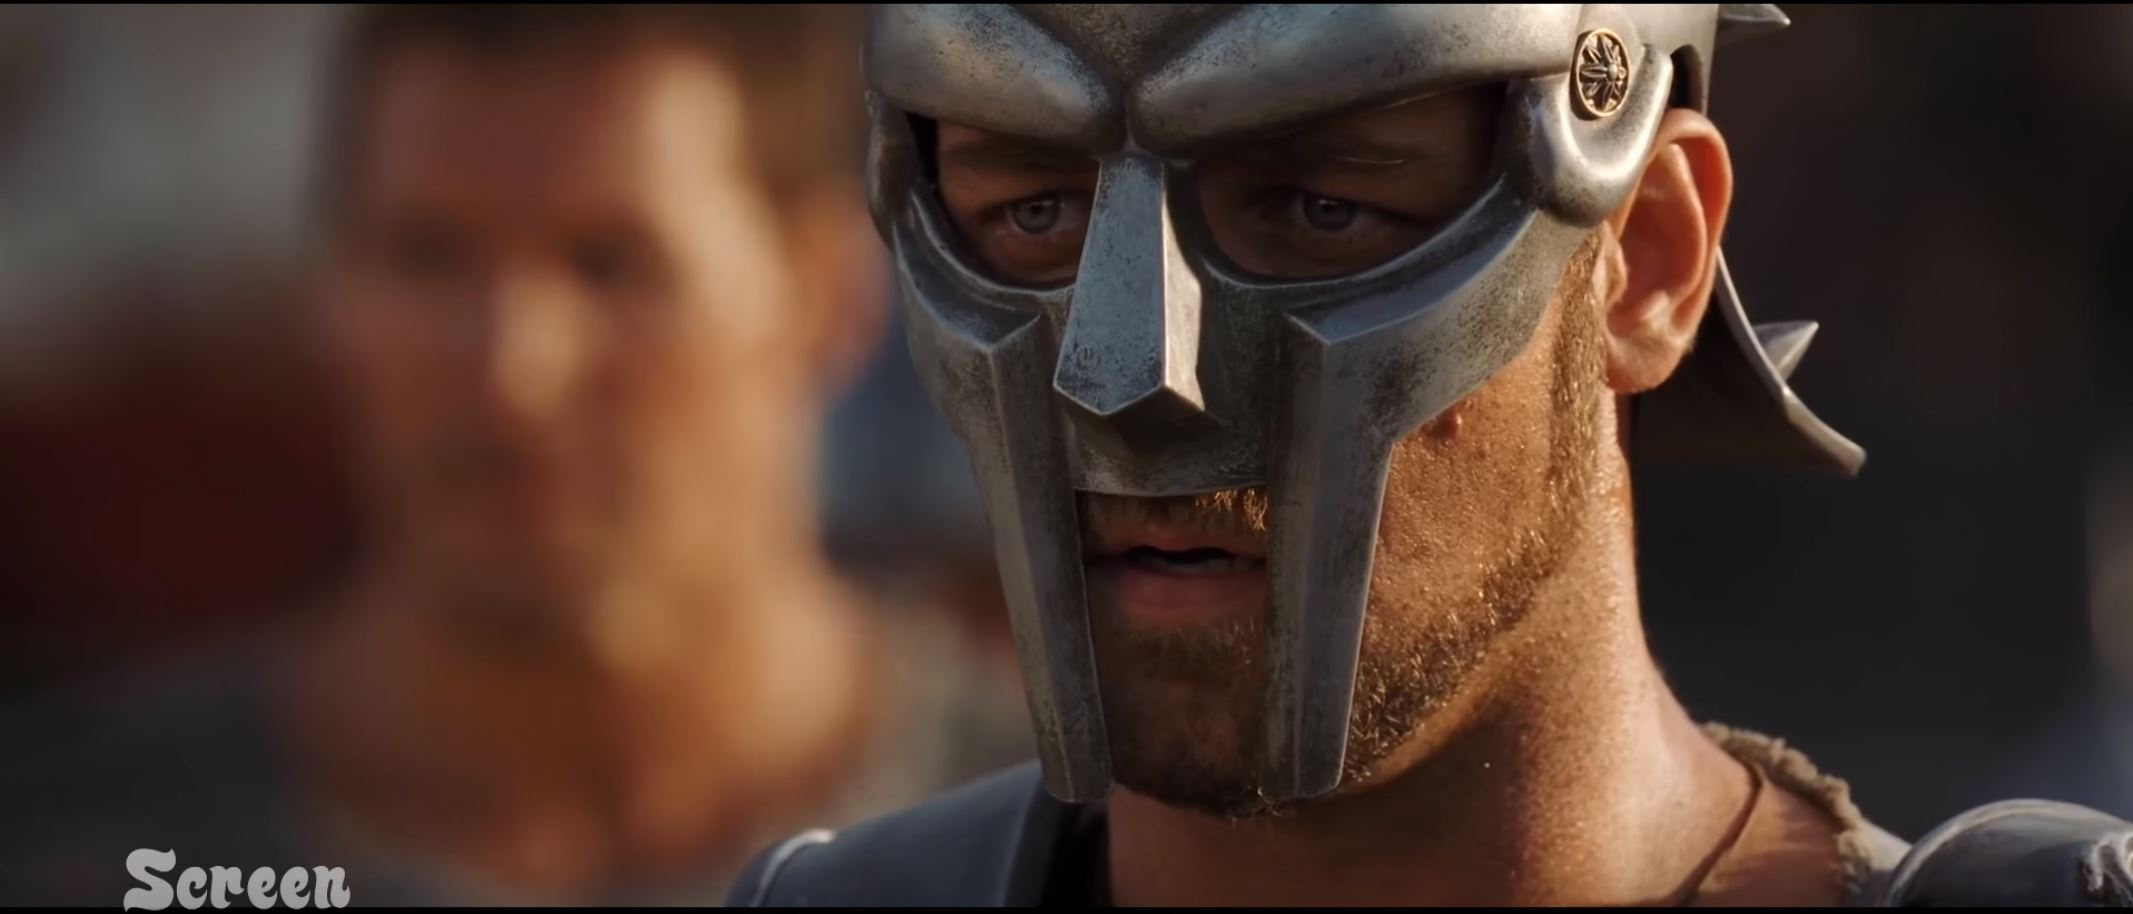 Watch the Hilarious Honest Trailer For The Classic Movie 'Gladiator'